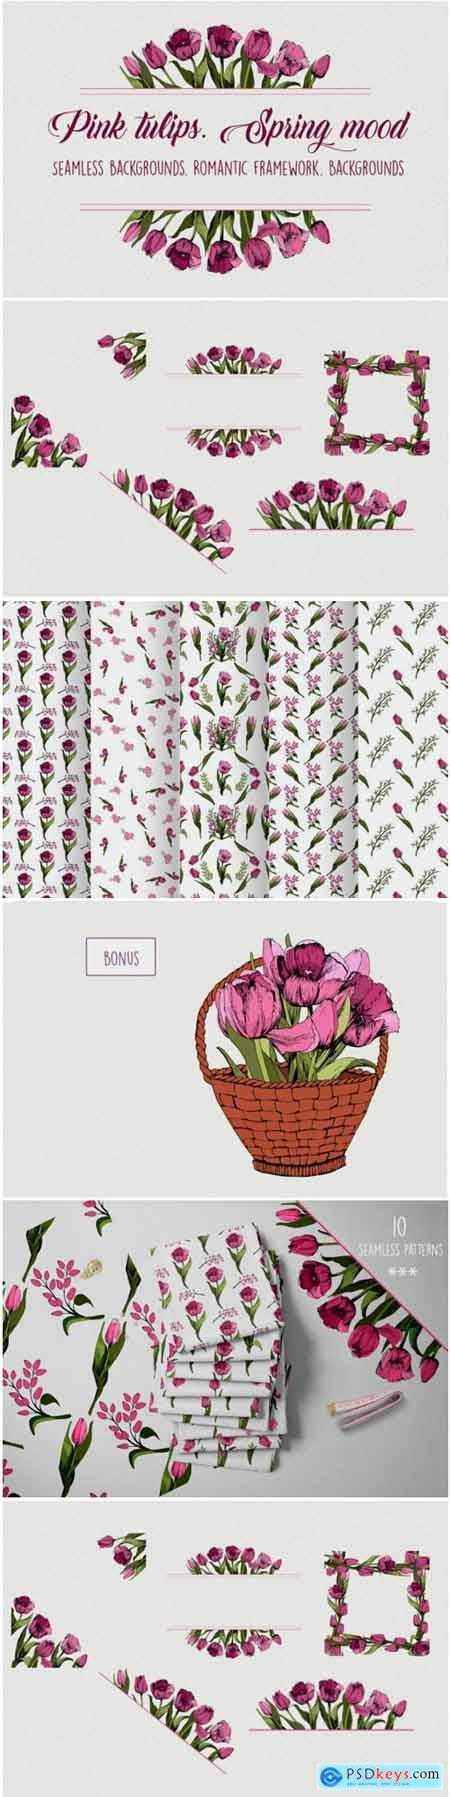 Pink Tulips Spring Mood 1717335